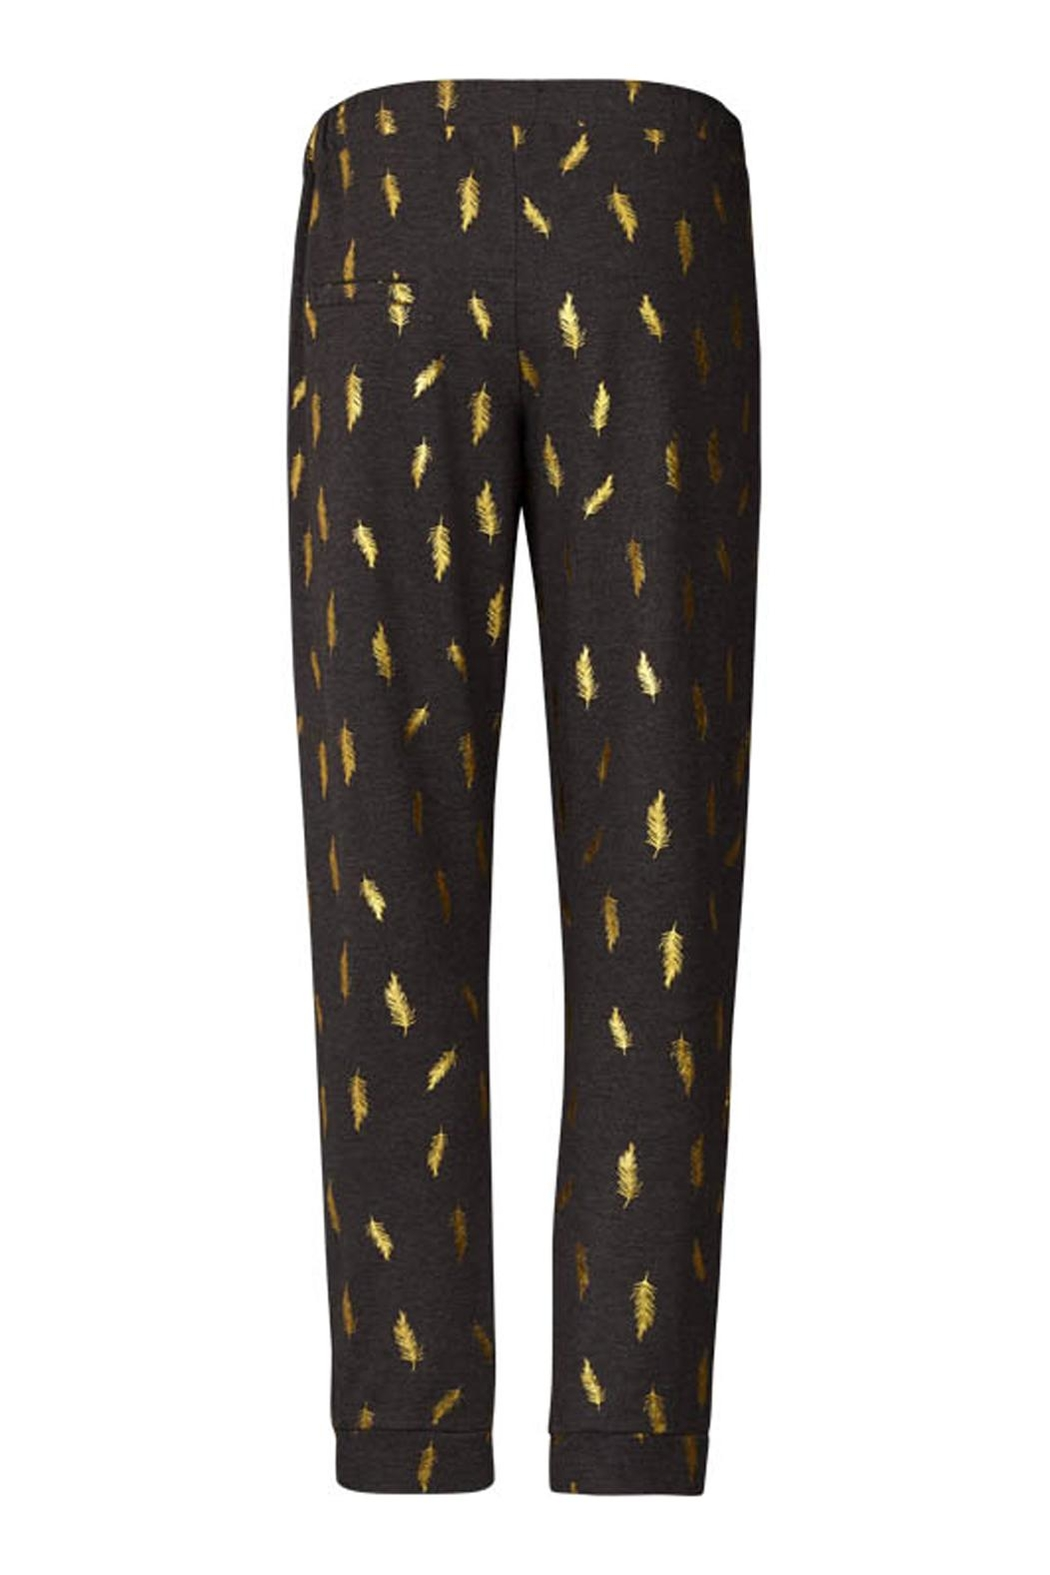 LOLLYS LAUNDRY Gold Feathered Sweatpants - Front Full Image